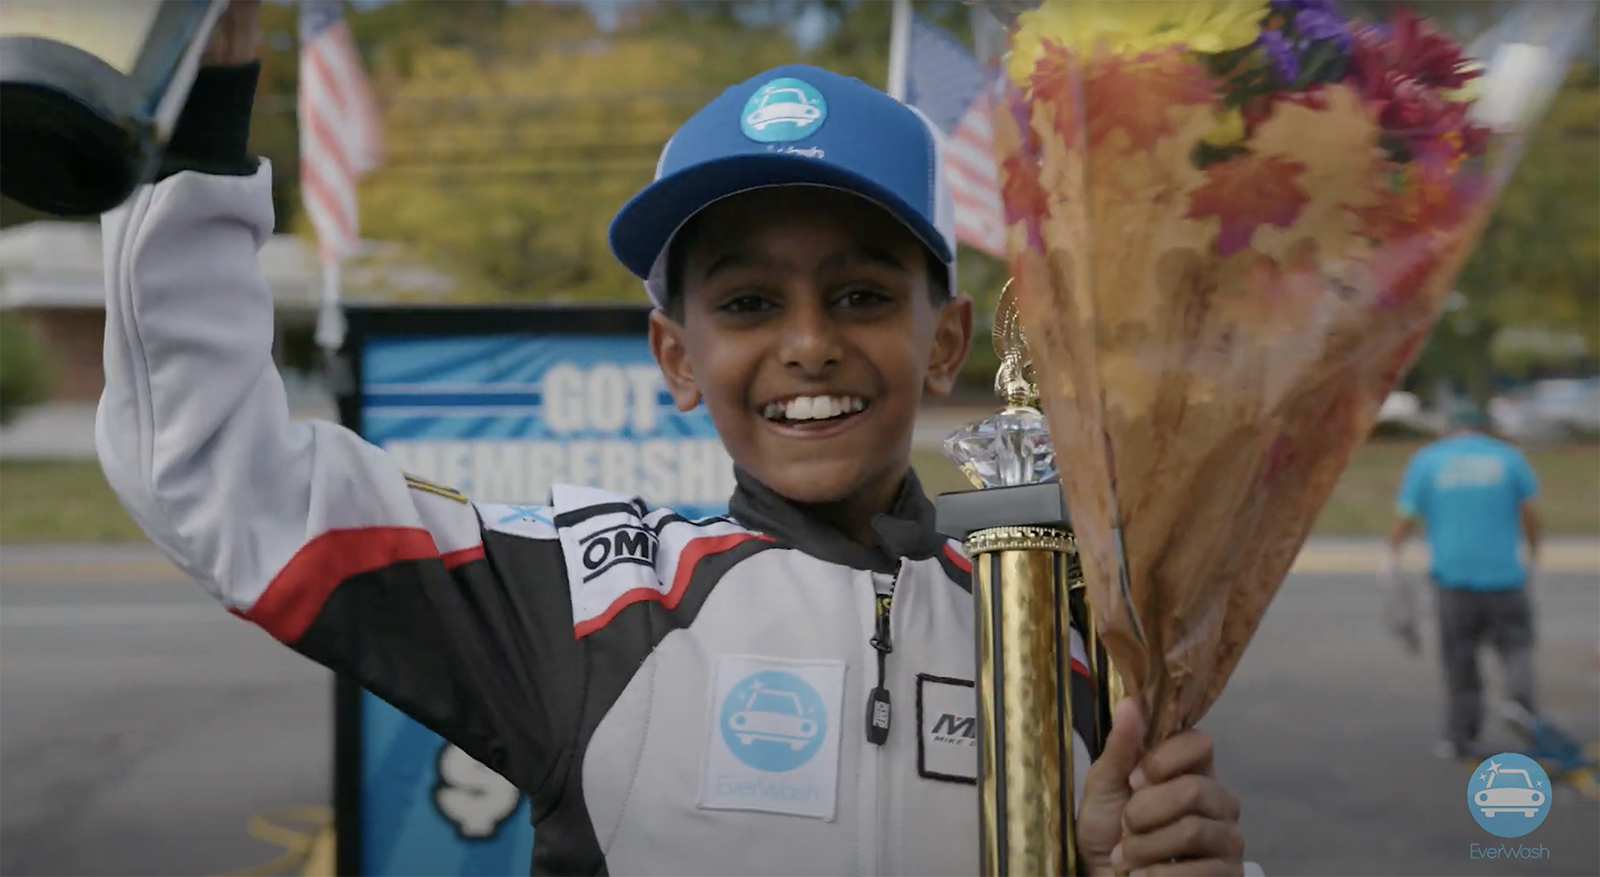 EverWash Sponsors Karting Championship Contender Vivek Kanthan For 2020-21 Racing Season